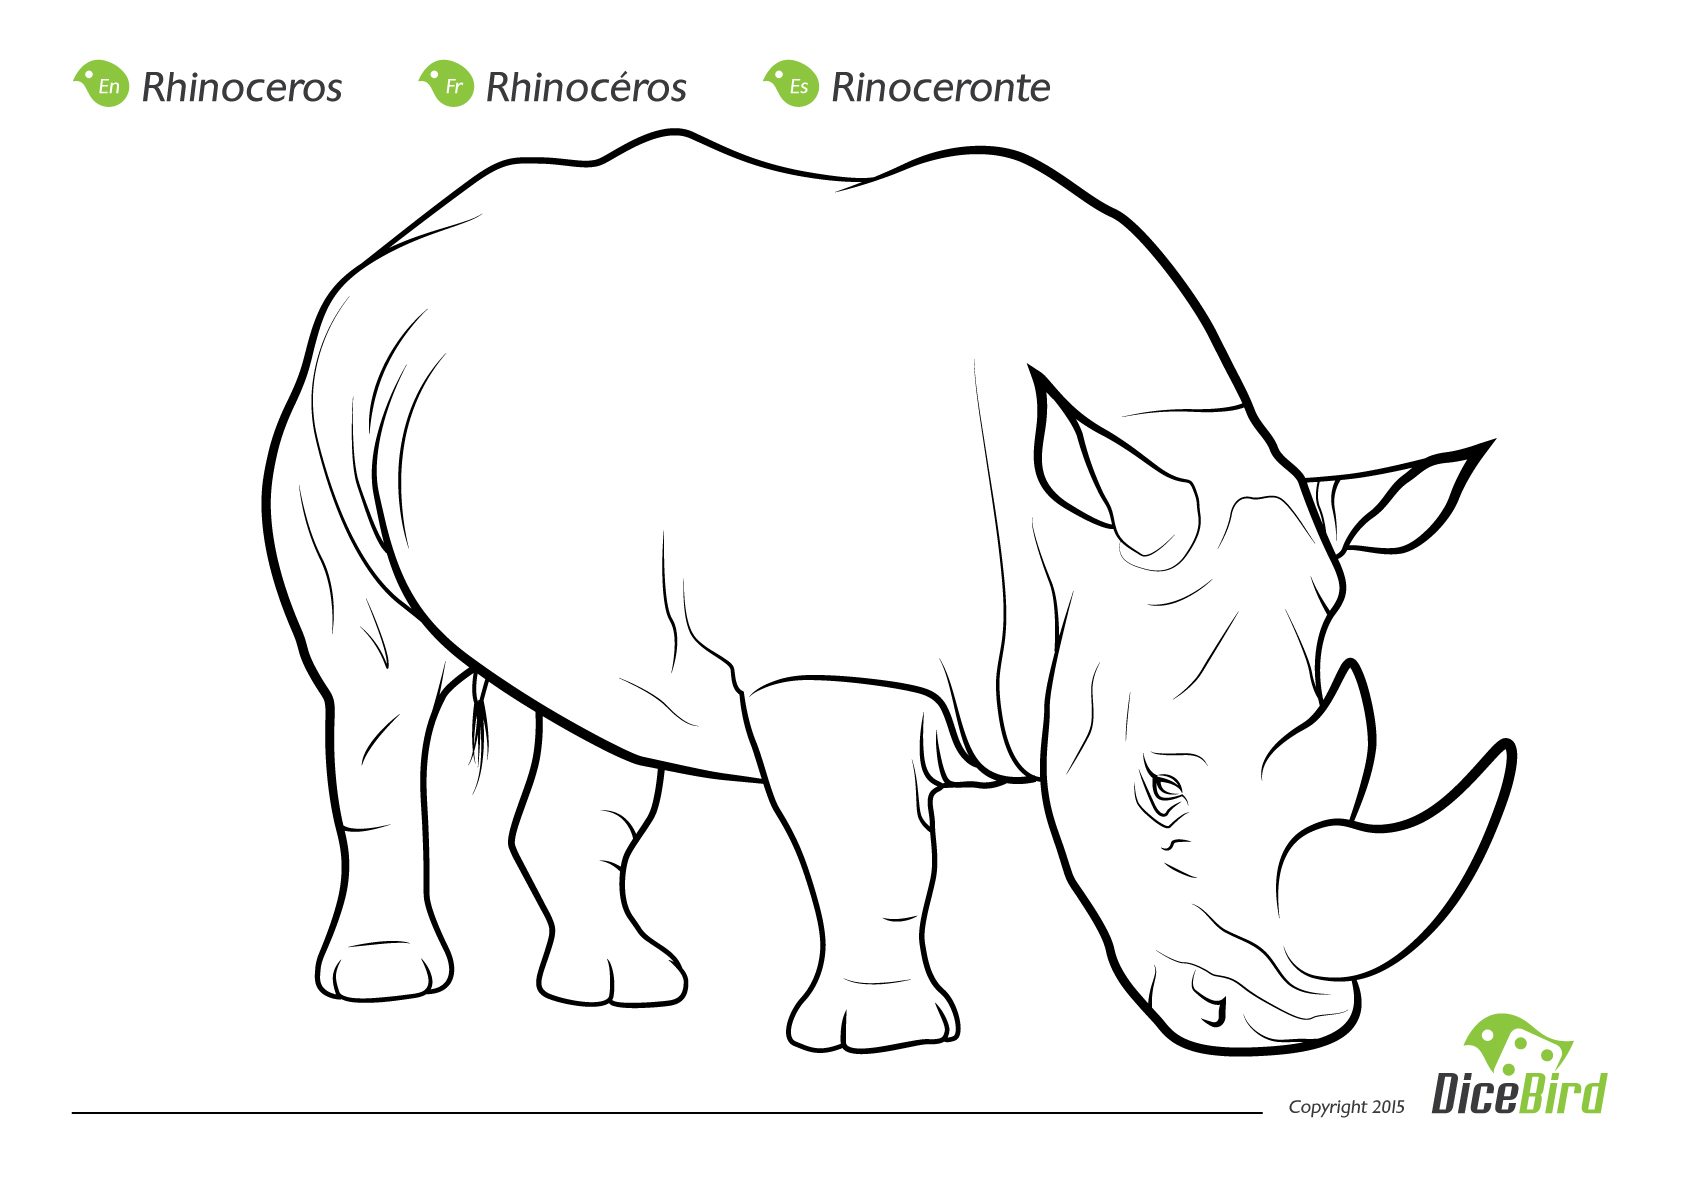 Free Printable Rhinoceros Coloring Pages For Kids | Coloring pages ... | 1190x1684